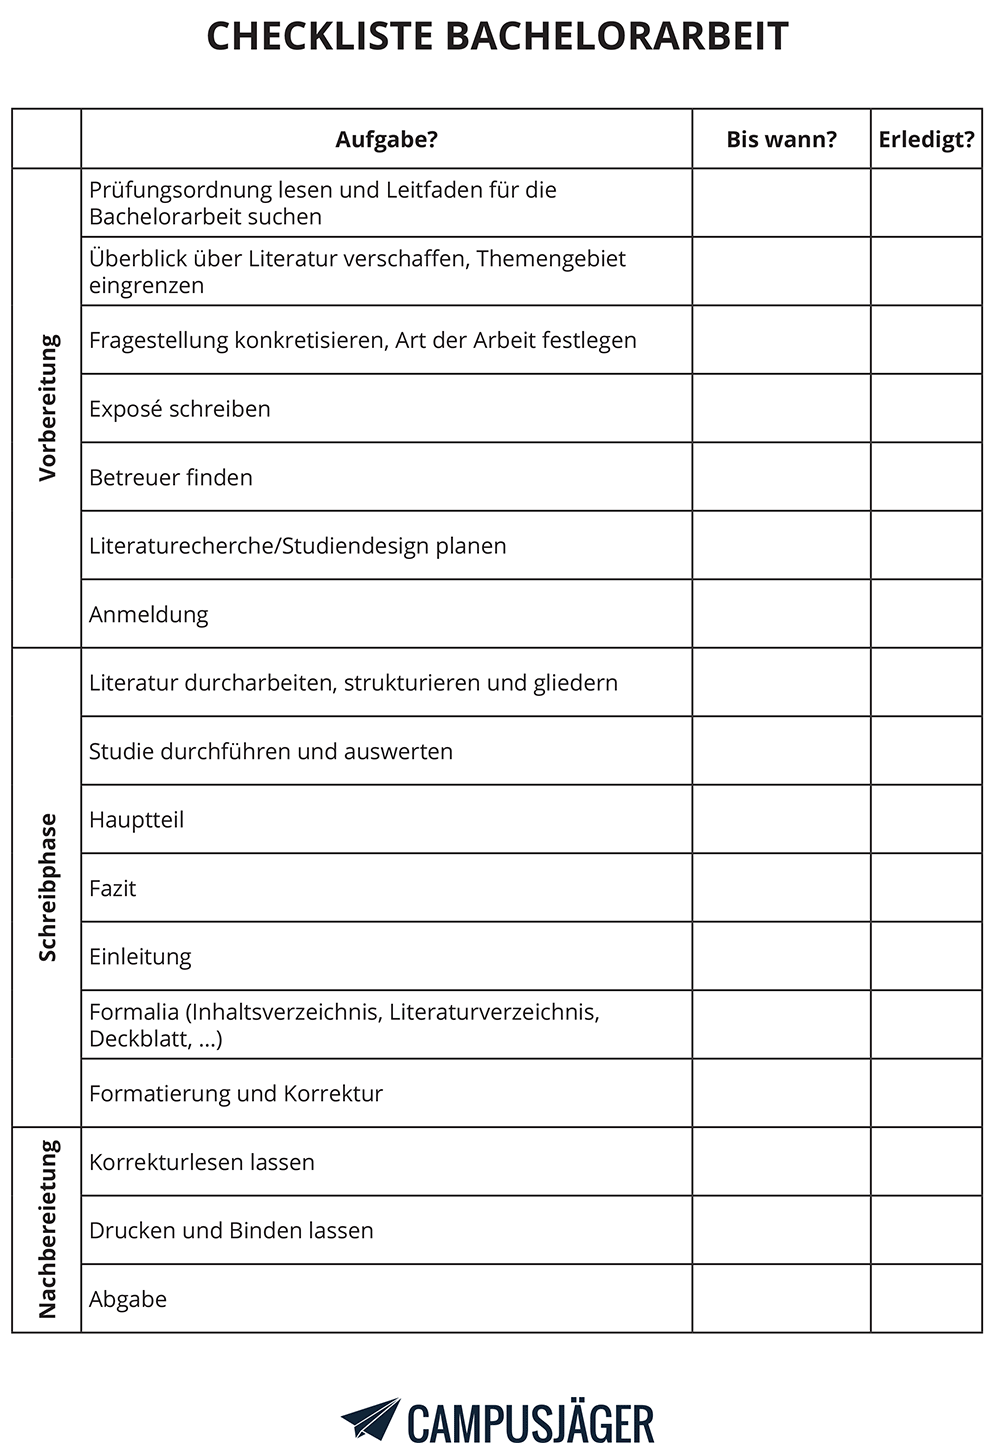 bachelorarbeit-checkliste